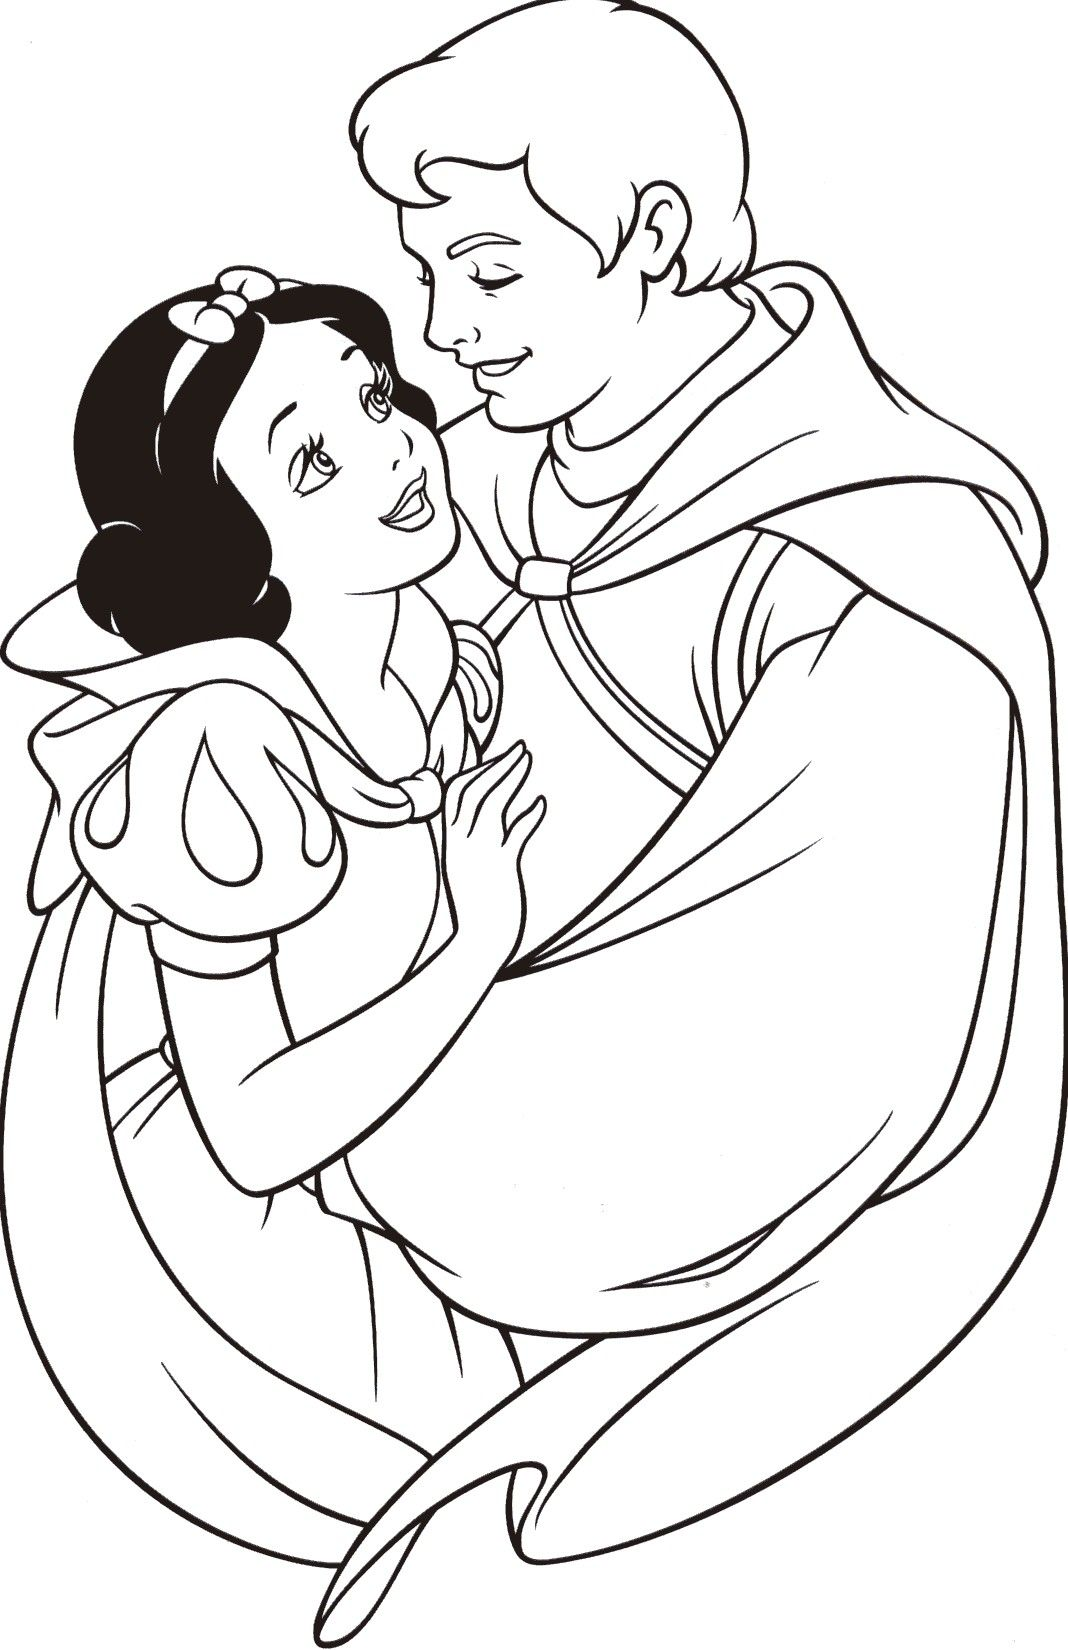 Snow White And Prince Charming Coloring Pages Coloring Page